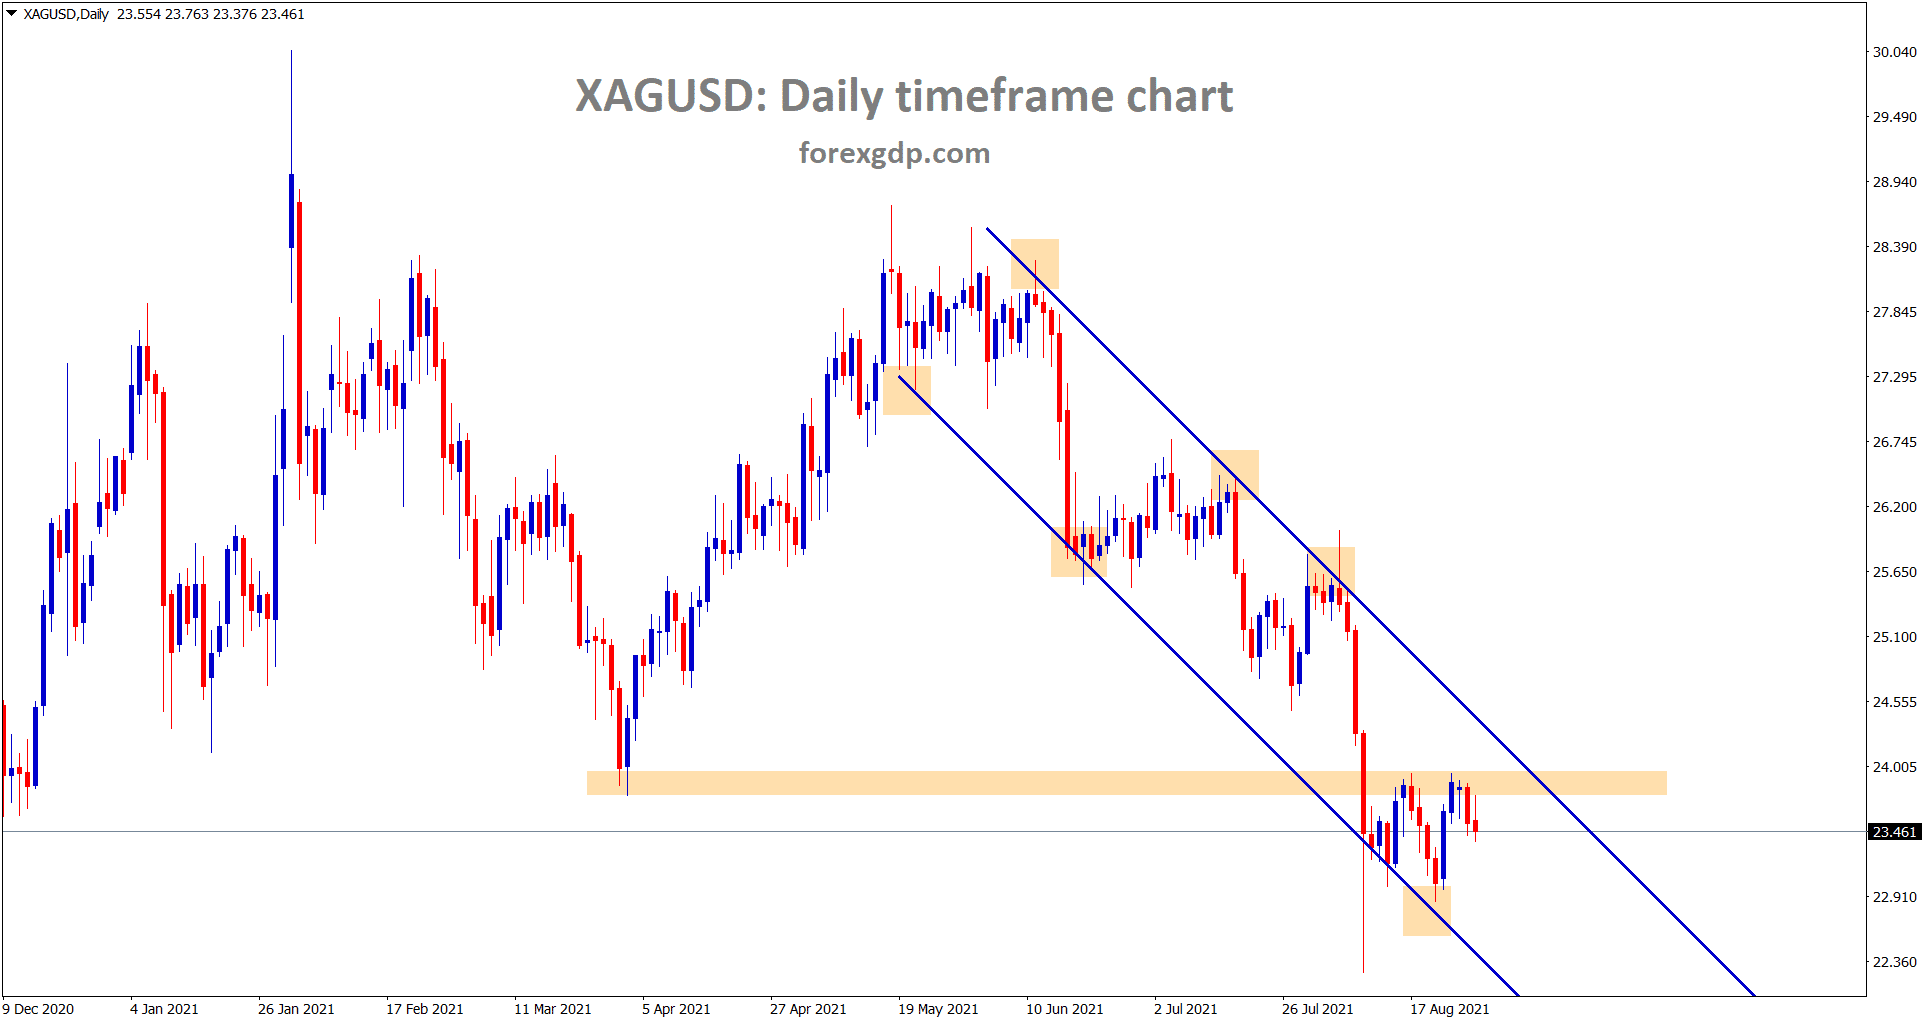 Silver XAGUSD starts to fall from the recent resistance